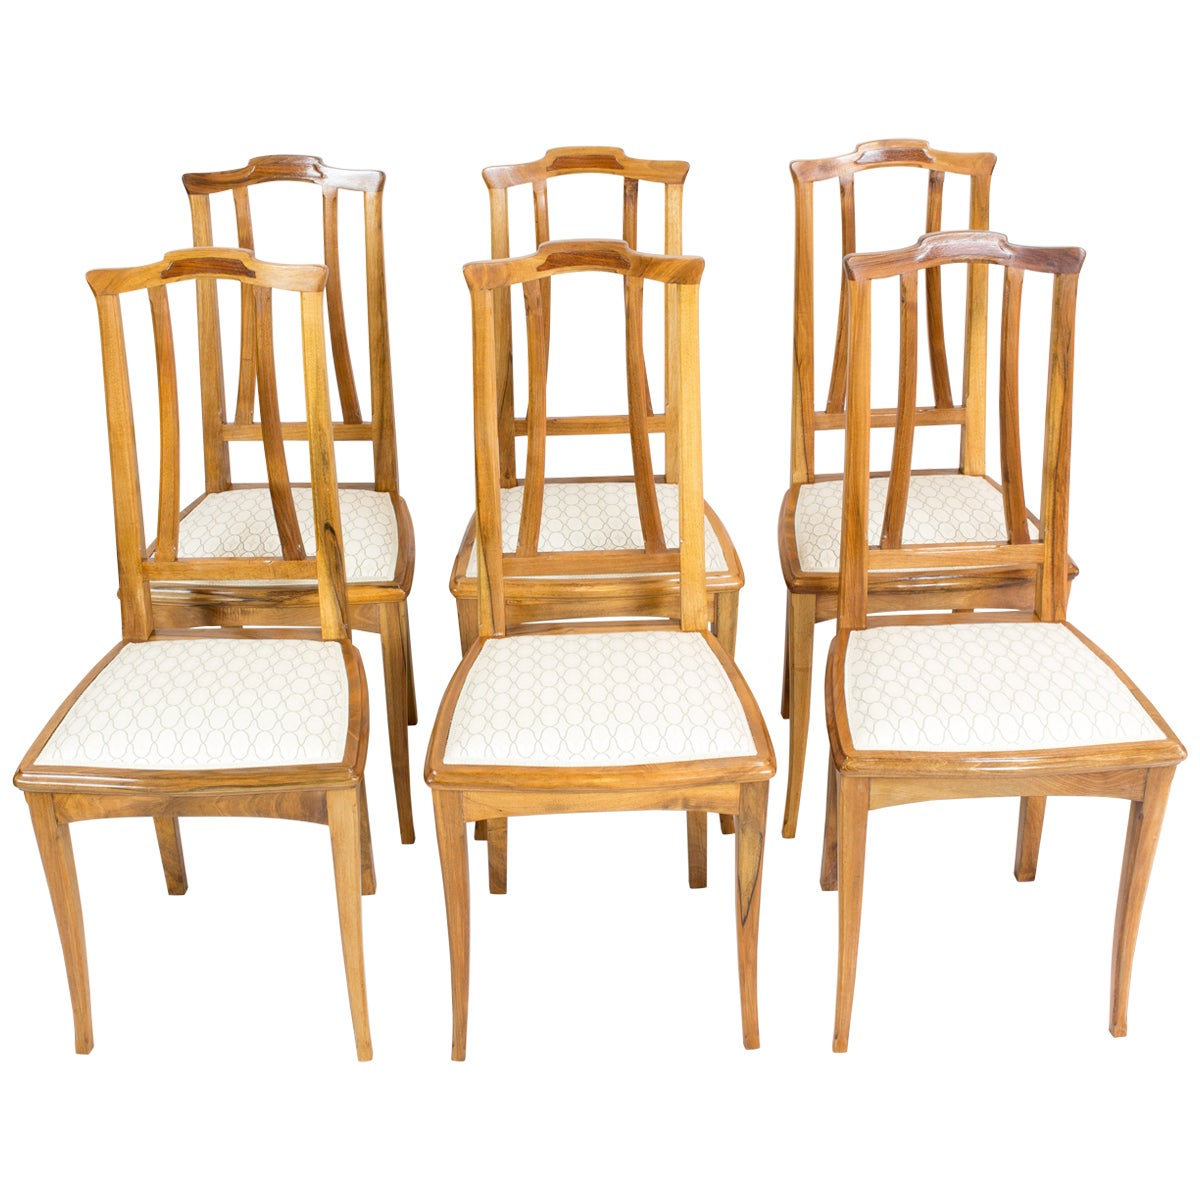 Set of Six Solid Walnut Art Nouveau Chairs from Germany